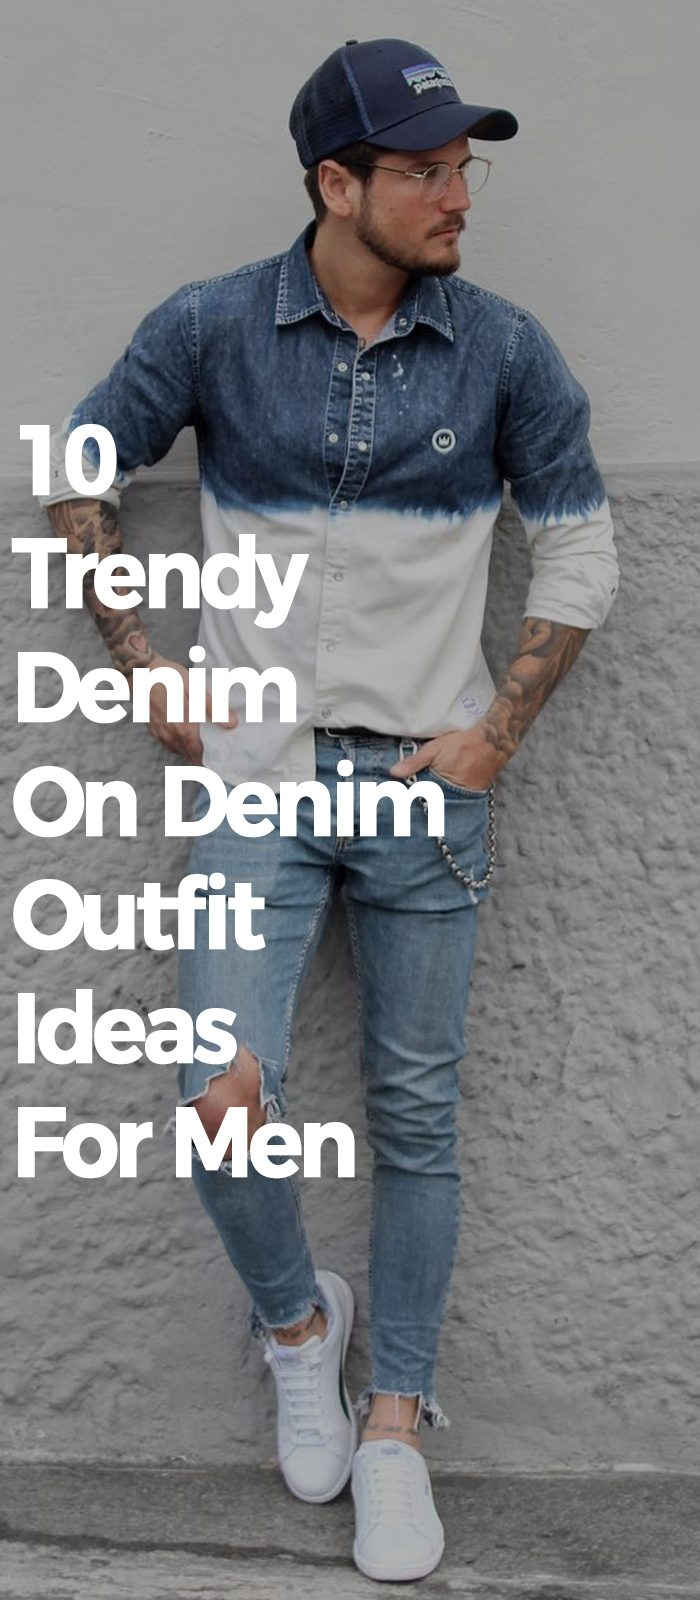 10 Trendy Denim On Denim Outfit Ideas For Men.